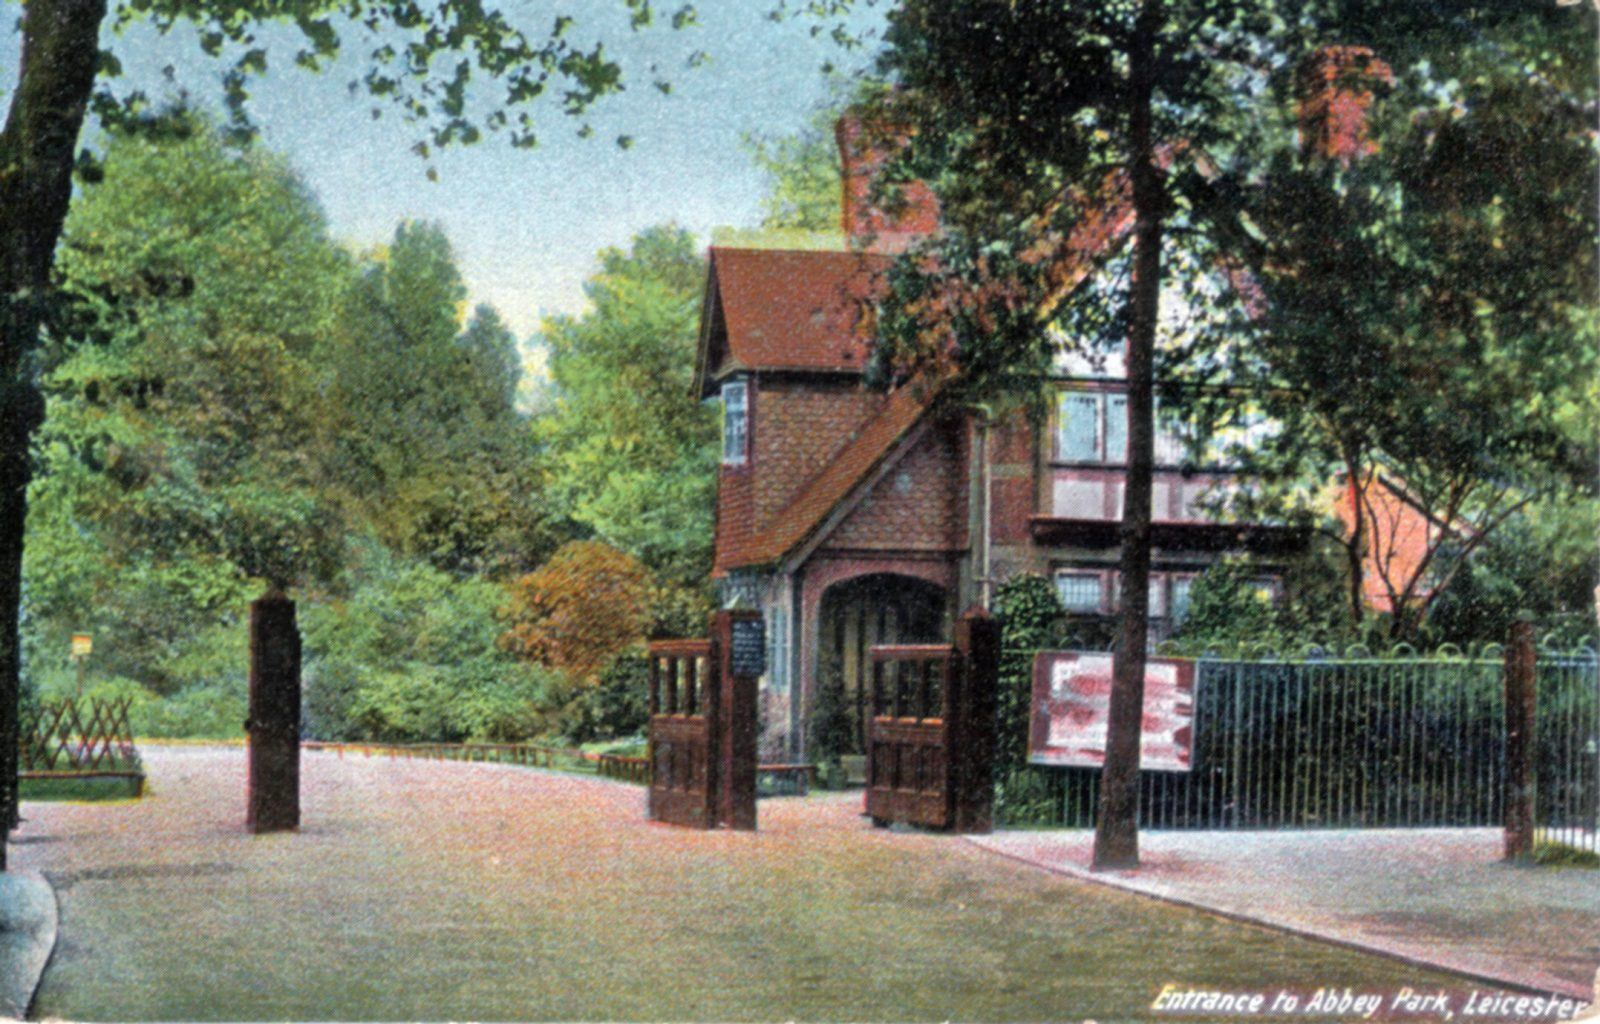 Abbey Park, Leicester. 1901-1920: Entrance gates with lodge house. (File:1016)